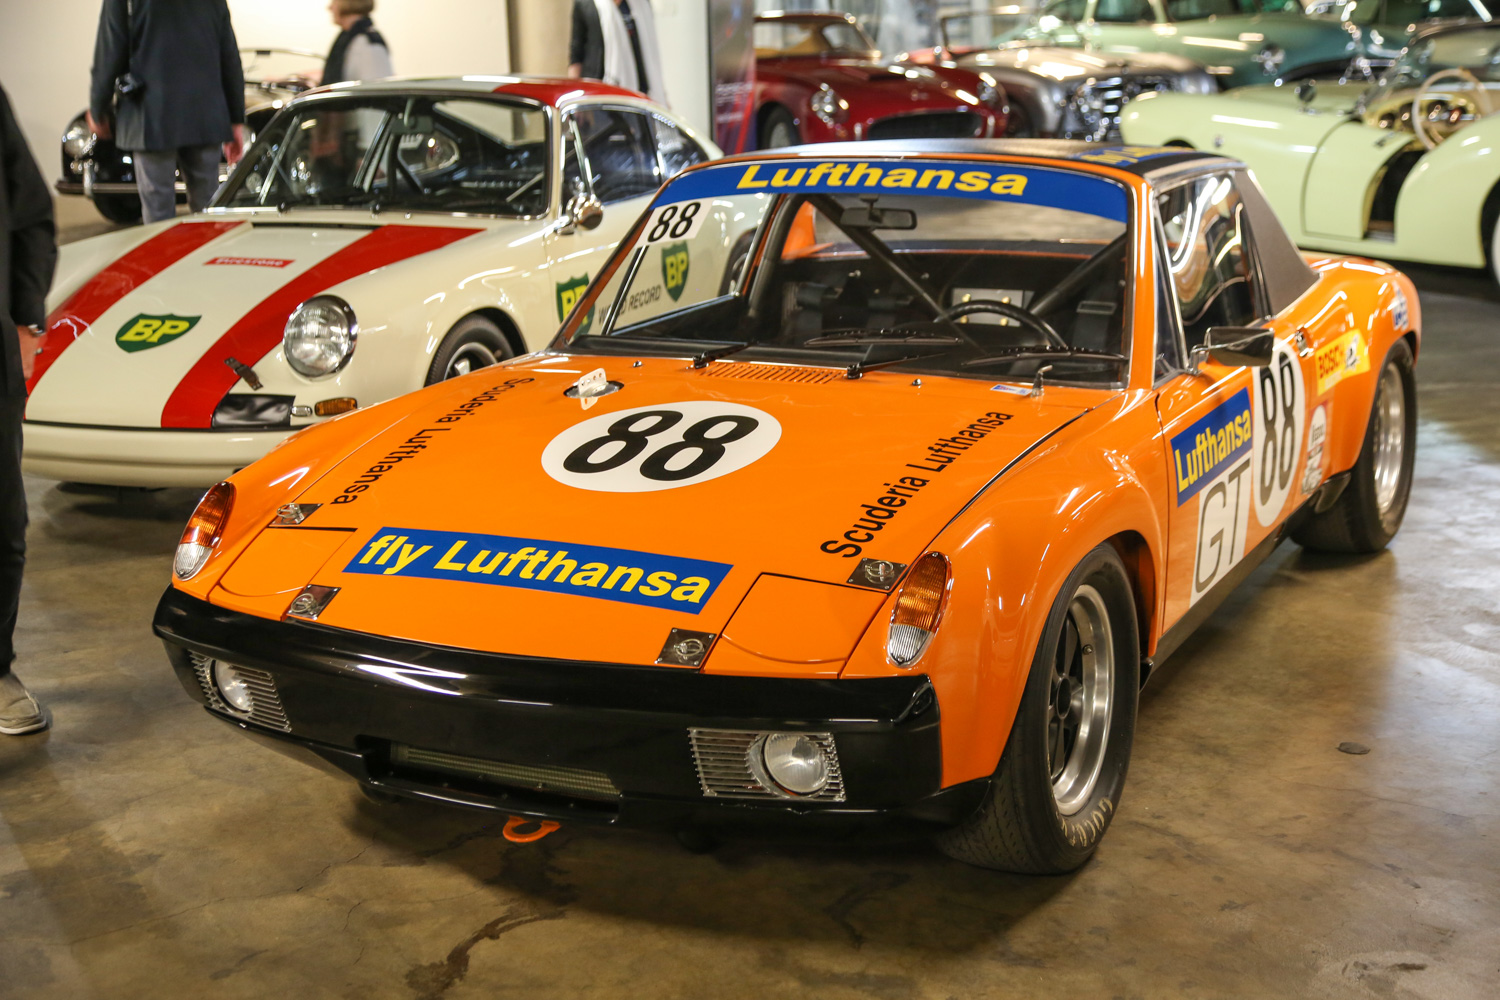 Another rare car, this 914-6 took fourth place in its class at the 24 Hours of Le Mans.